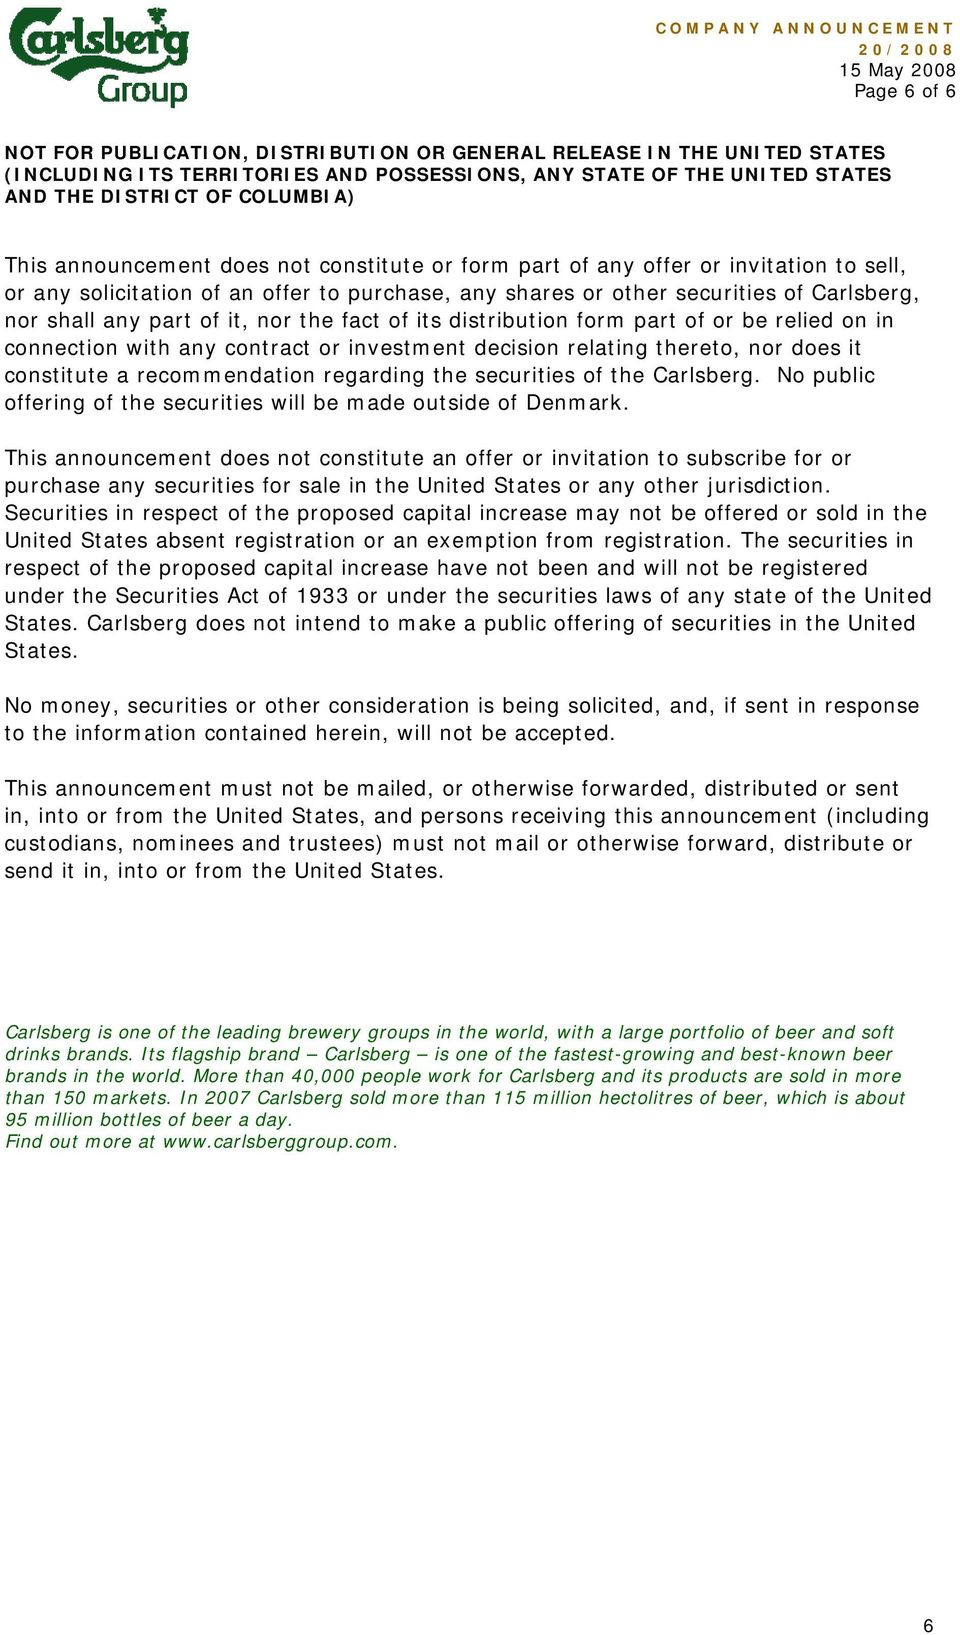 regarding the securities of the Carlsberg. No public offering of the securities will be made outside of Denmark.